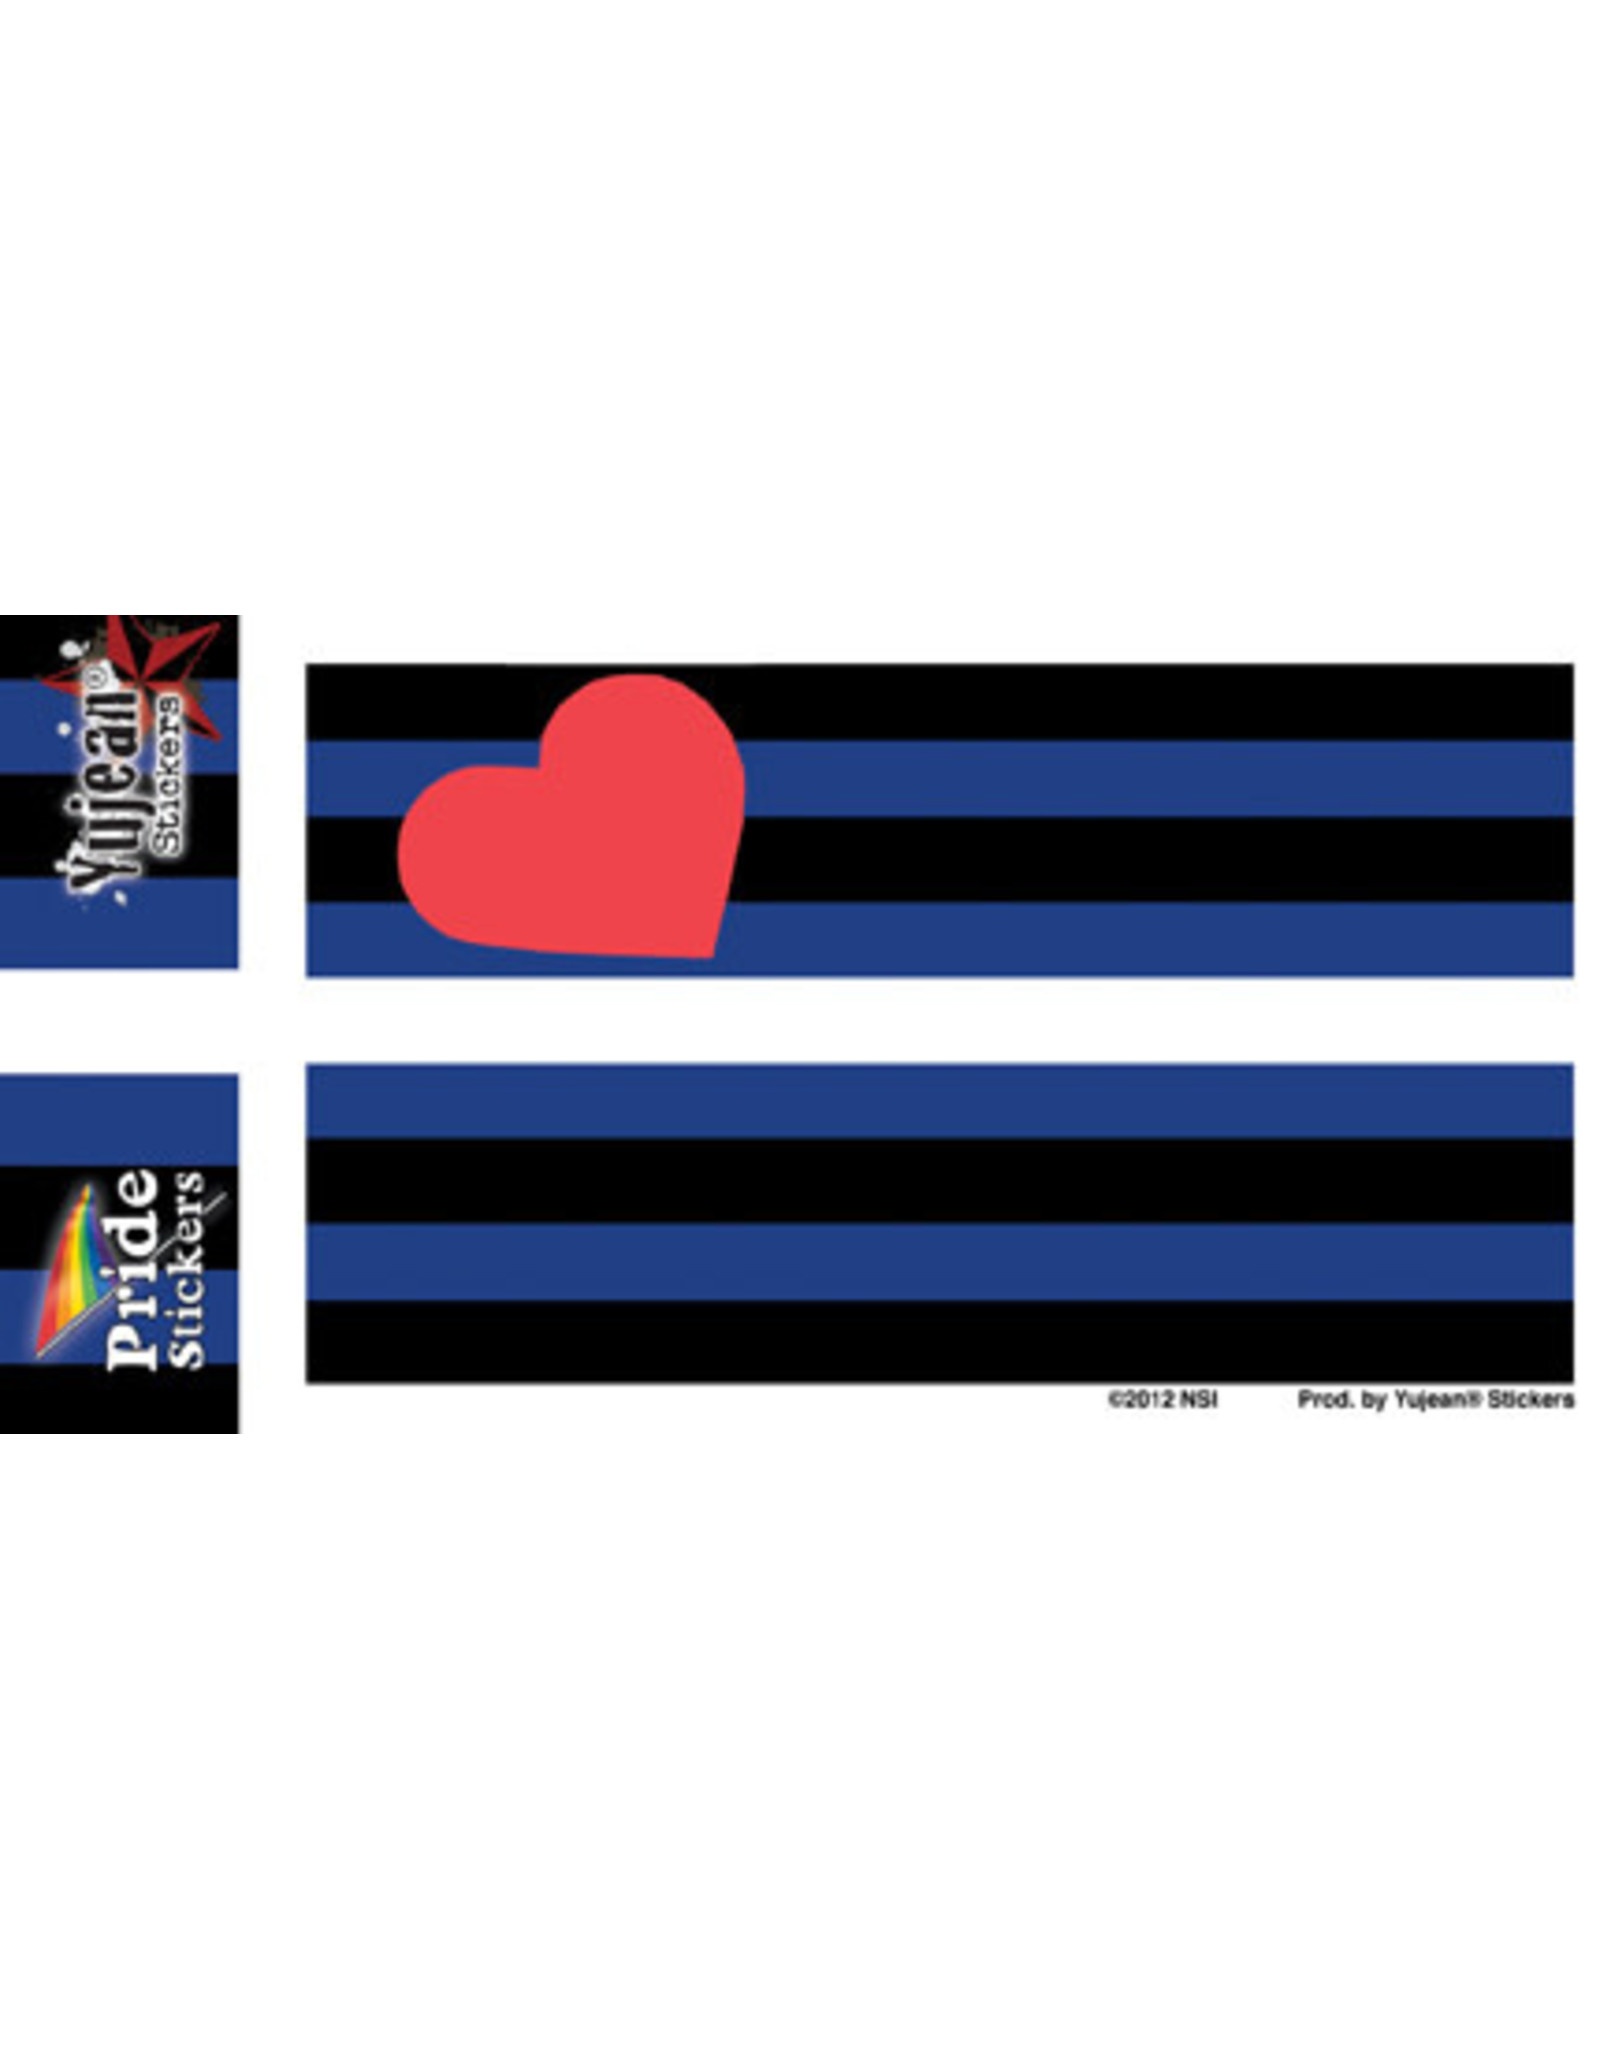 """YUJEAN BDSM LEATHER AND FETISH FLAG 5"""" x 3.75"""""""